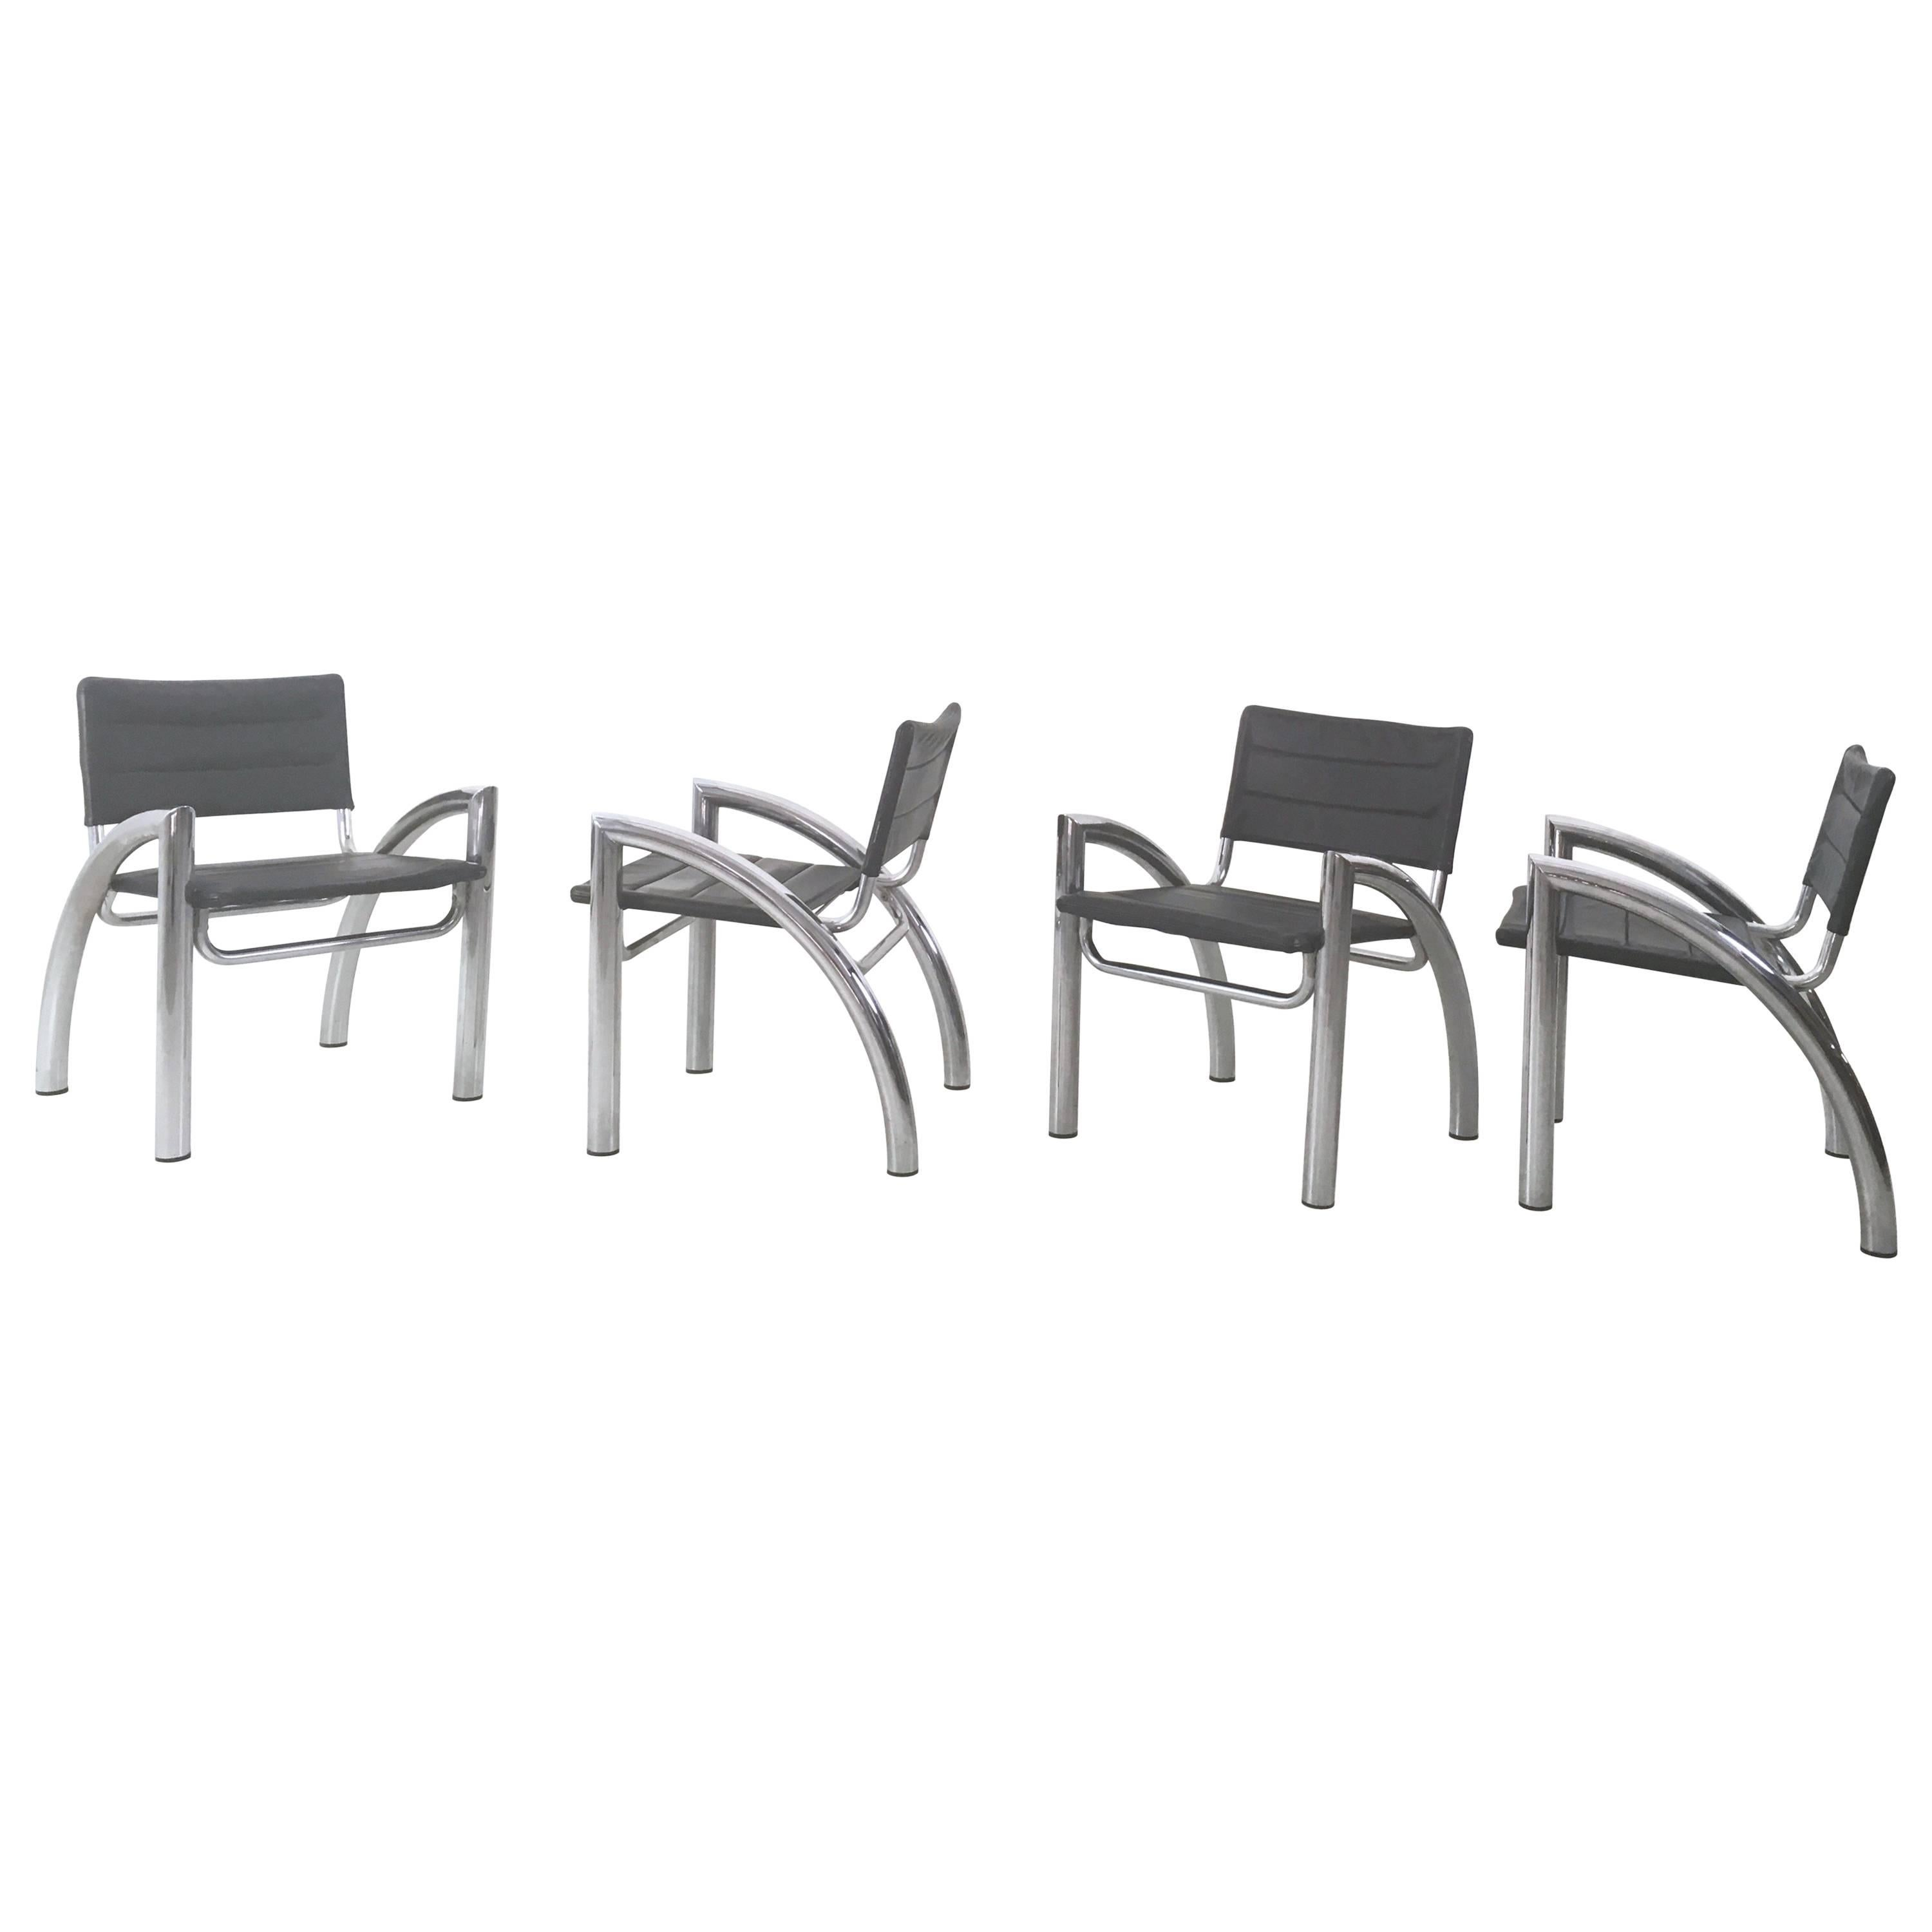 Group of Four Leather and Chromed Metal Chairs, 1970s